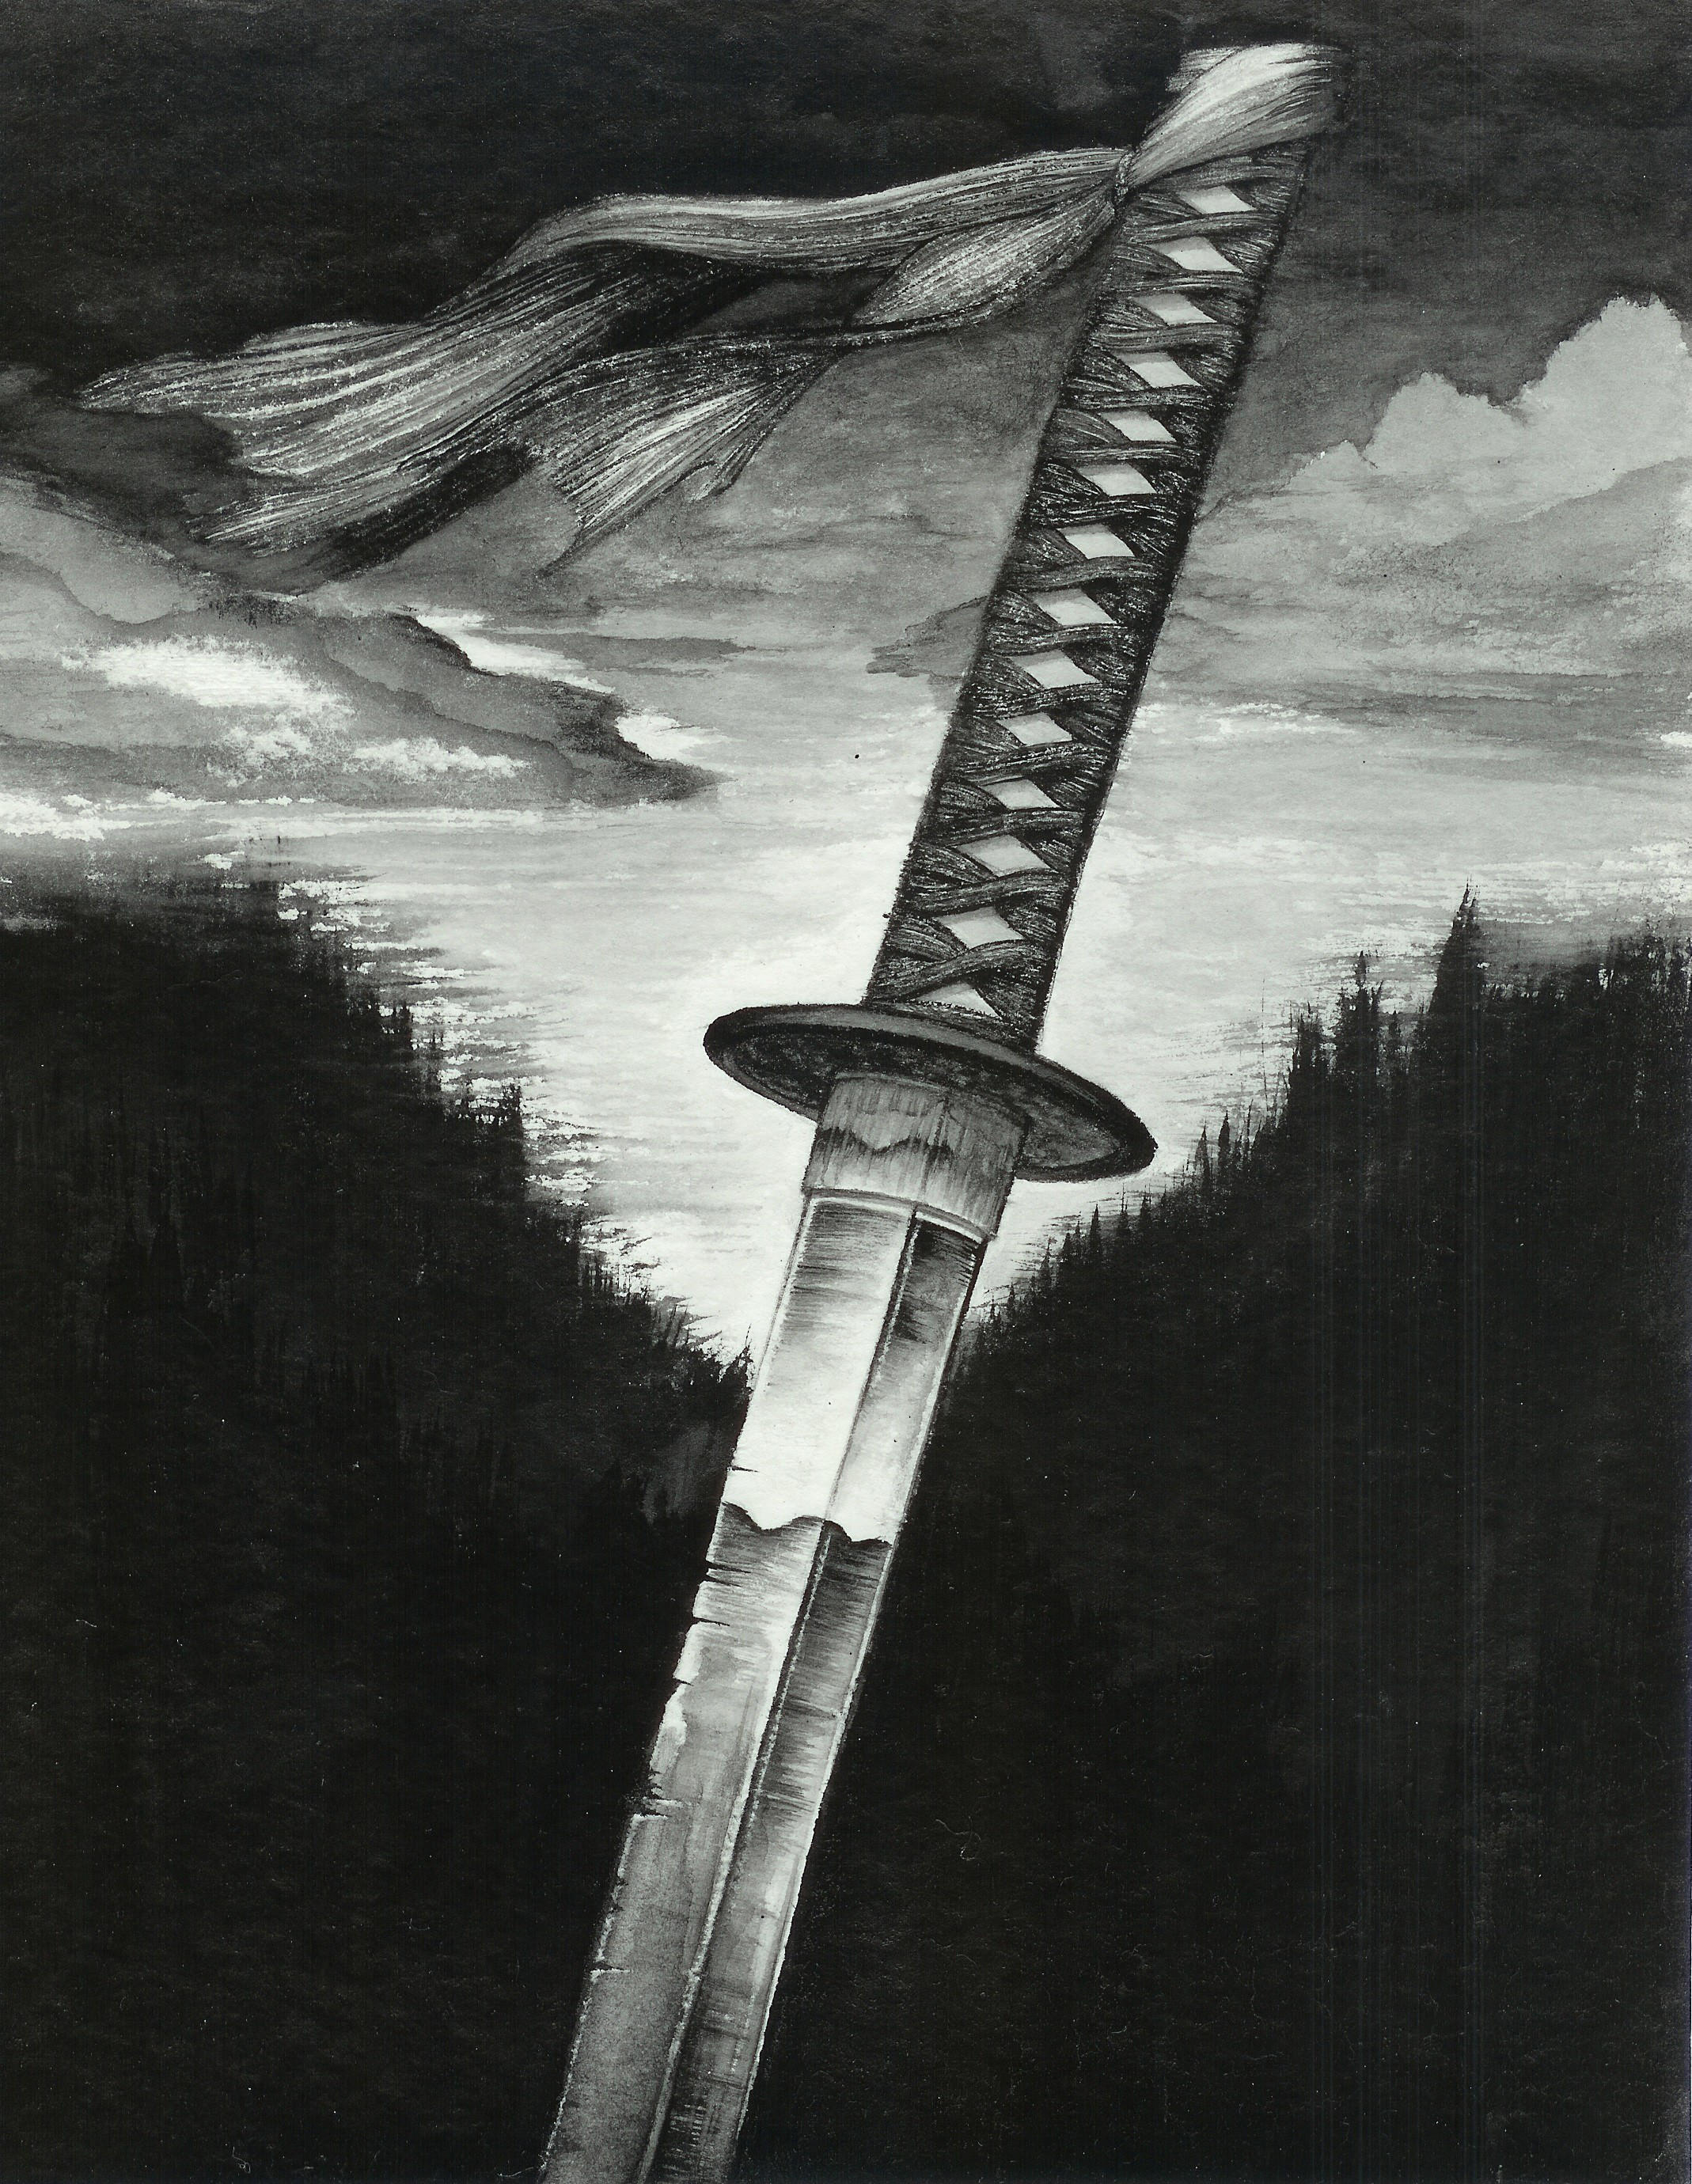 Soul of the Samurai by Zaider